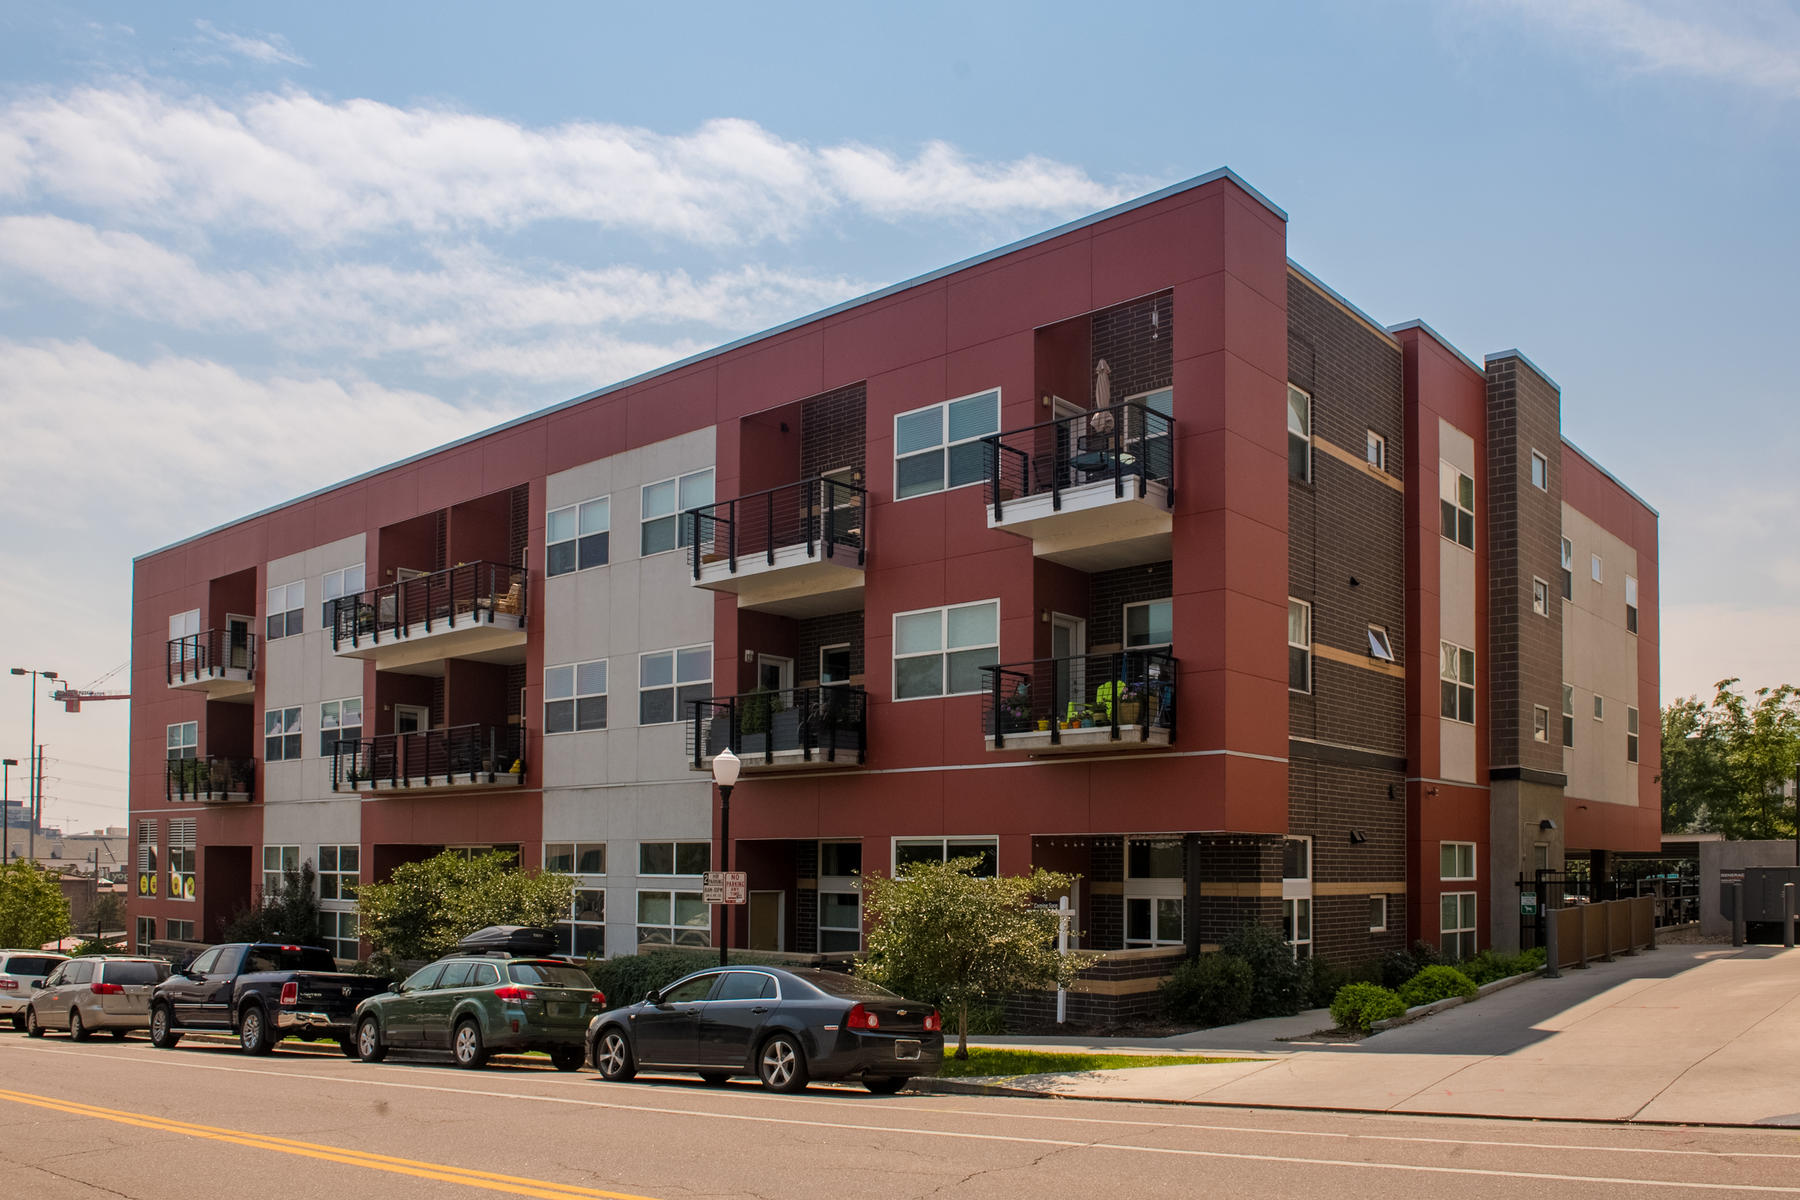 Property for Active at Fabulous Condo with A Location That's Hard To Beat! 2518 16th St Denver, Colorado 80211 United States